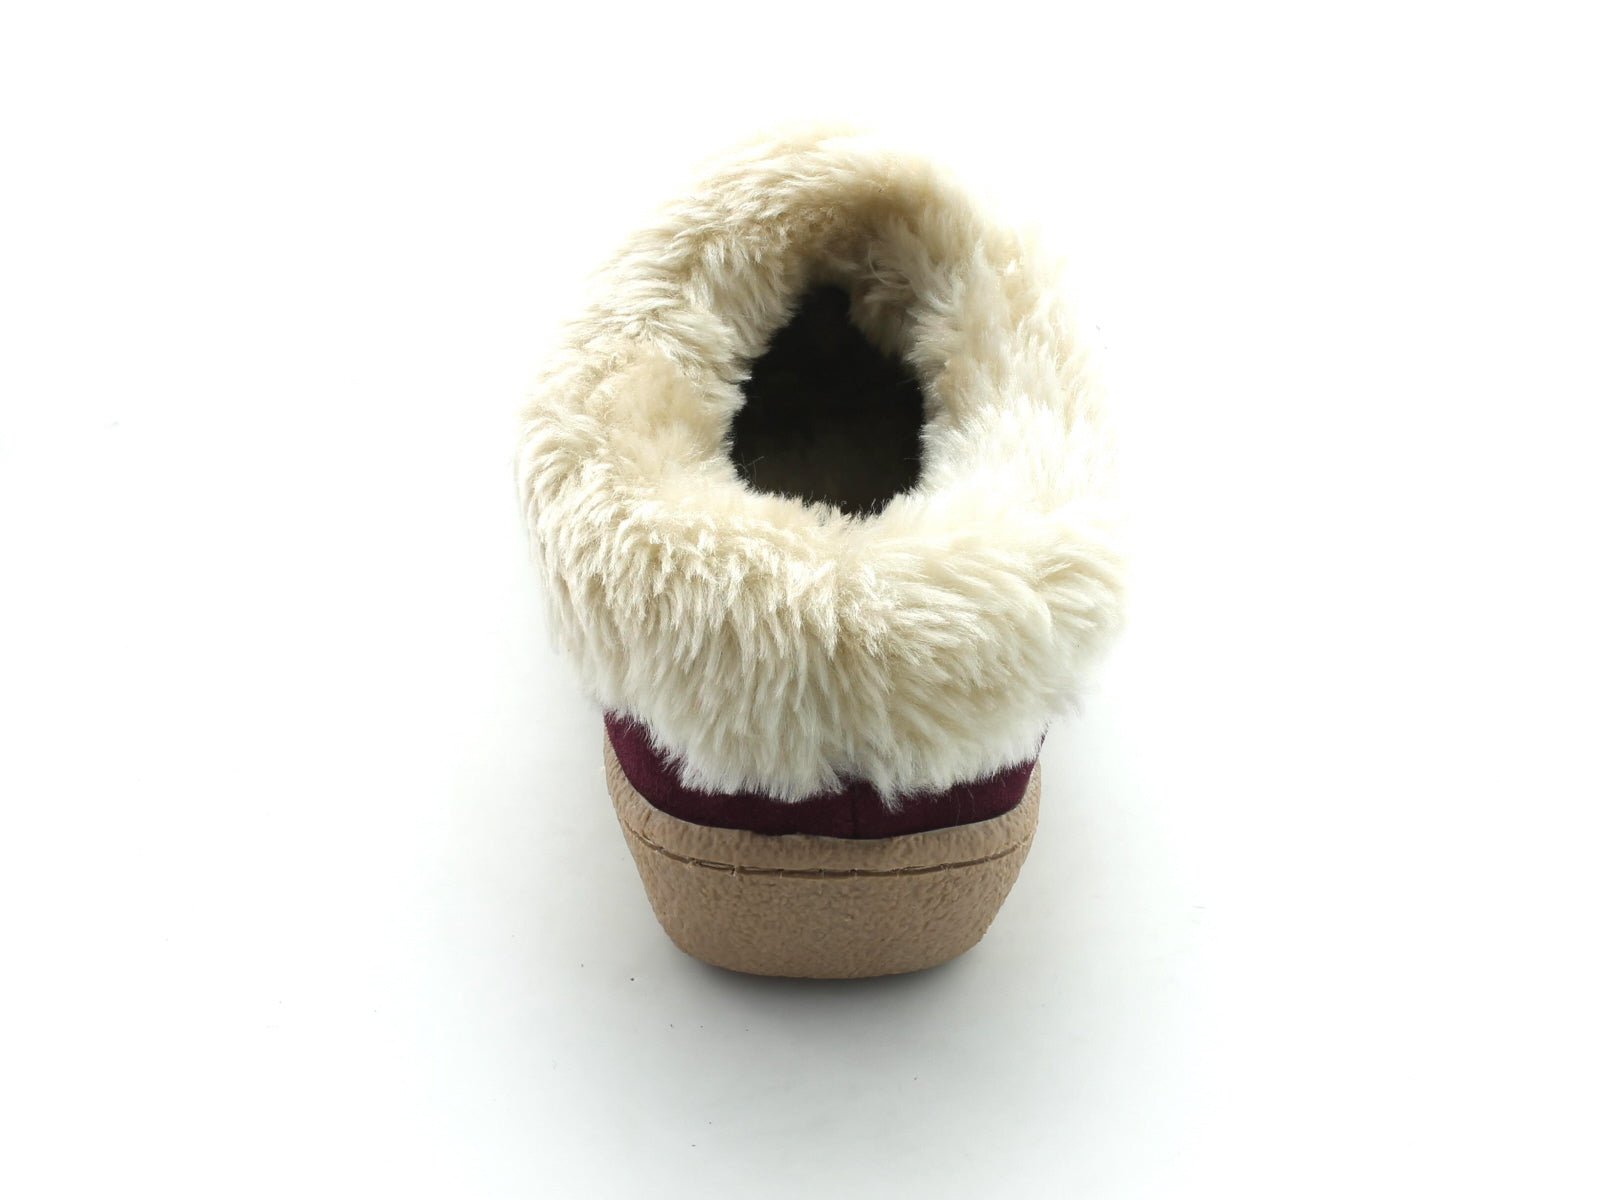 Clarks Eskimo Snow in Berry Suede back view